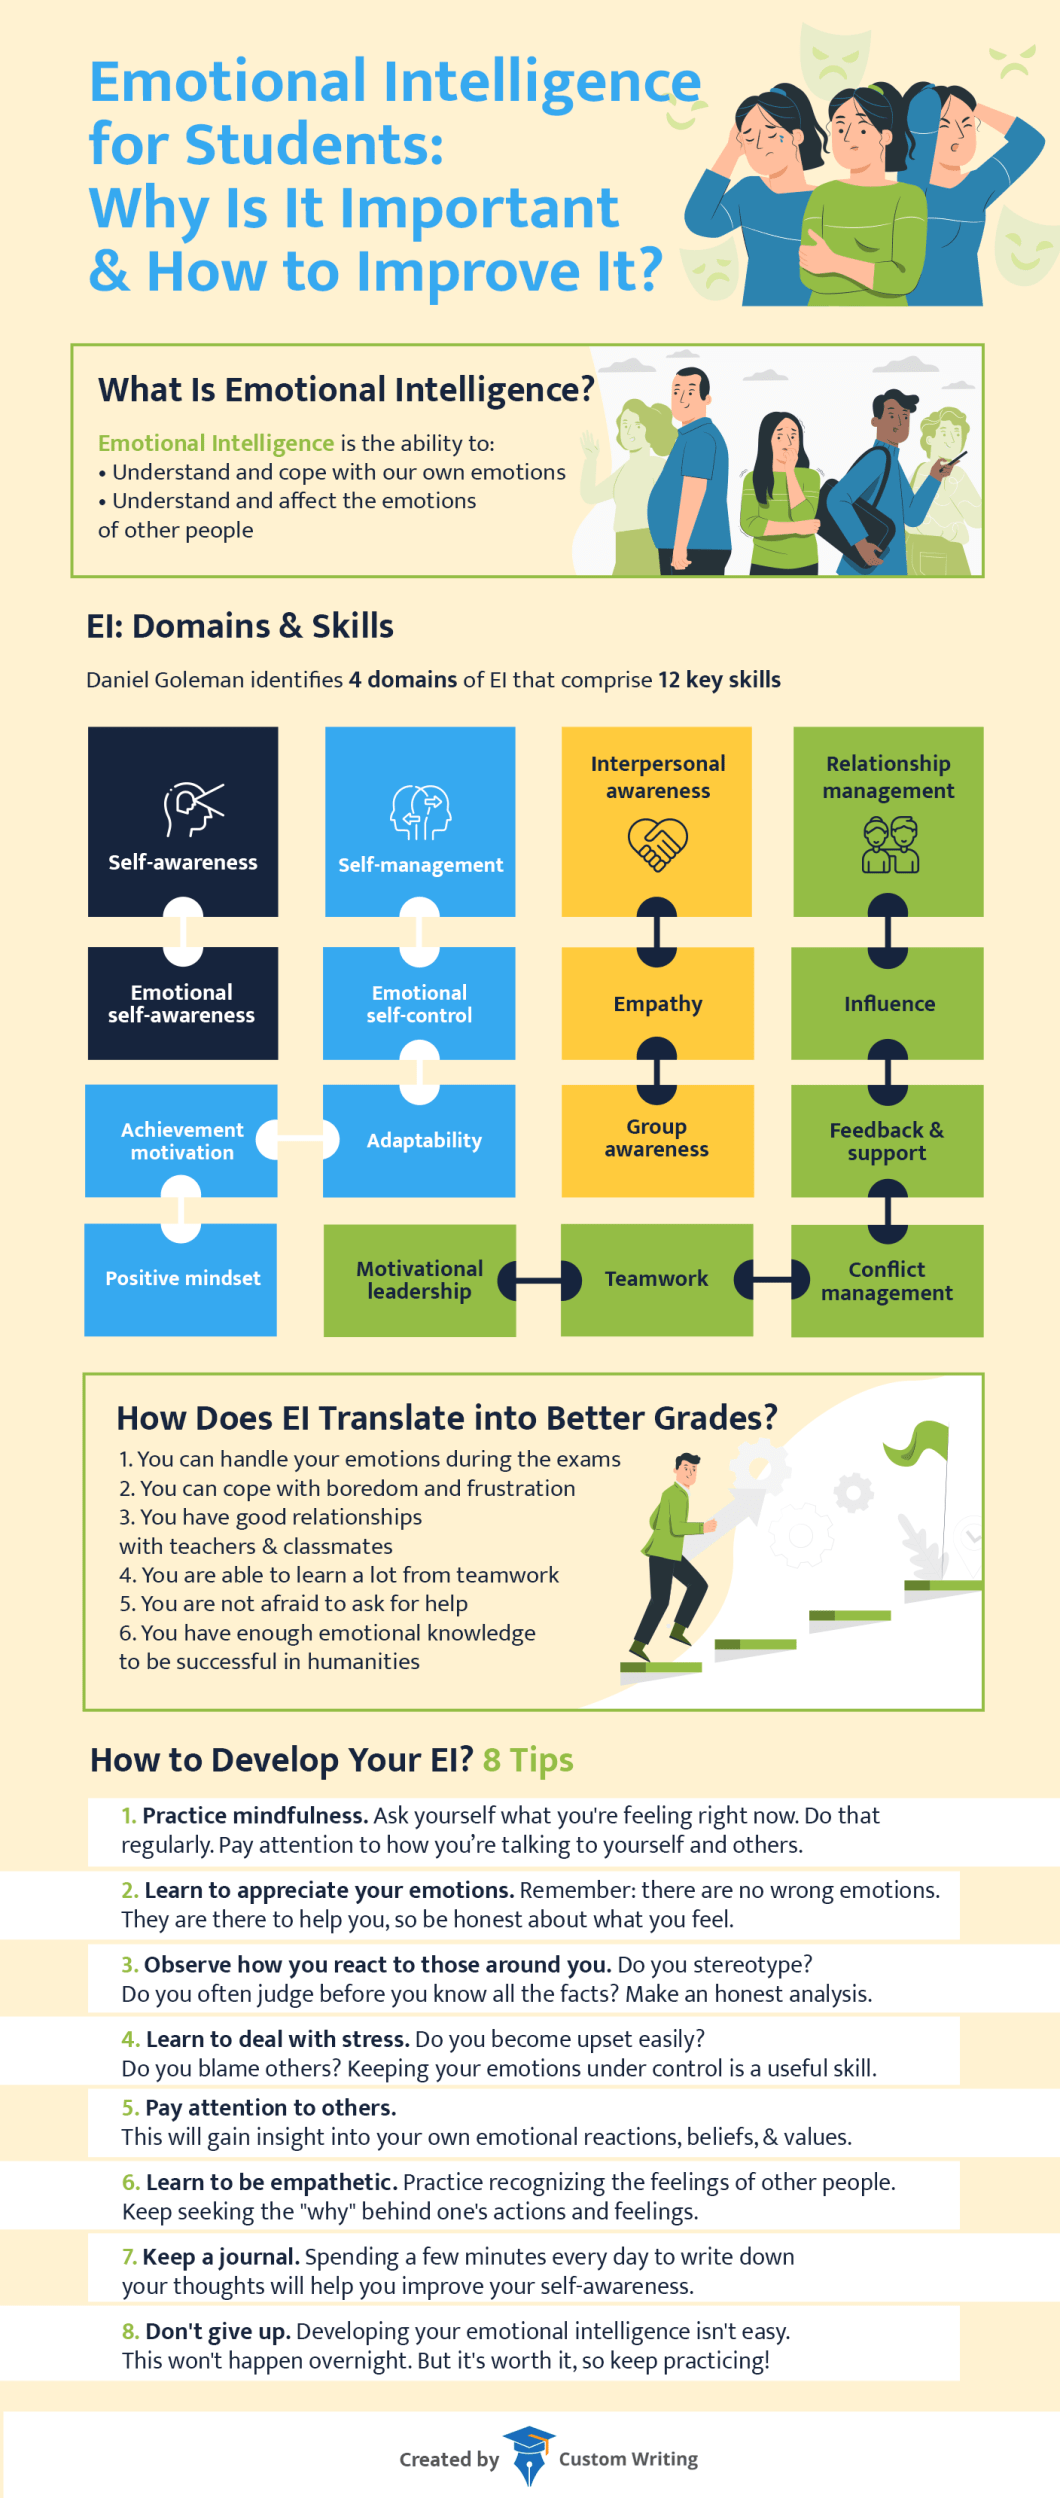 Emotional Intelligence for Students: Why Is It Important & How to Improve It? - Infographic